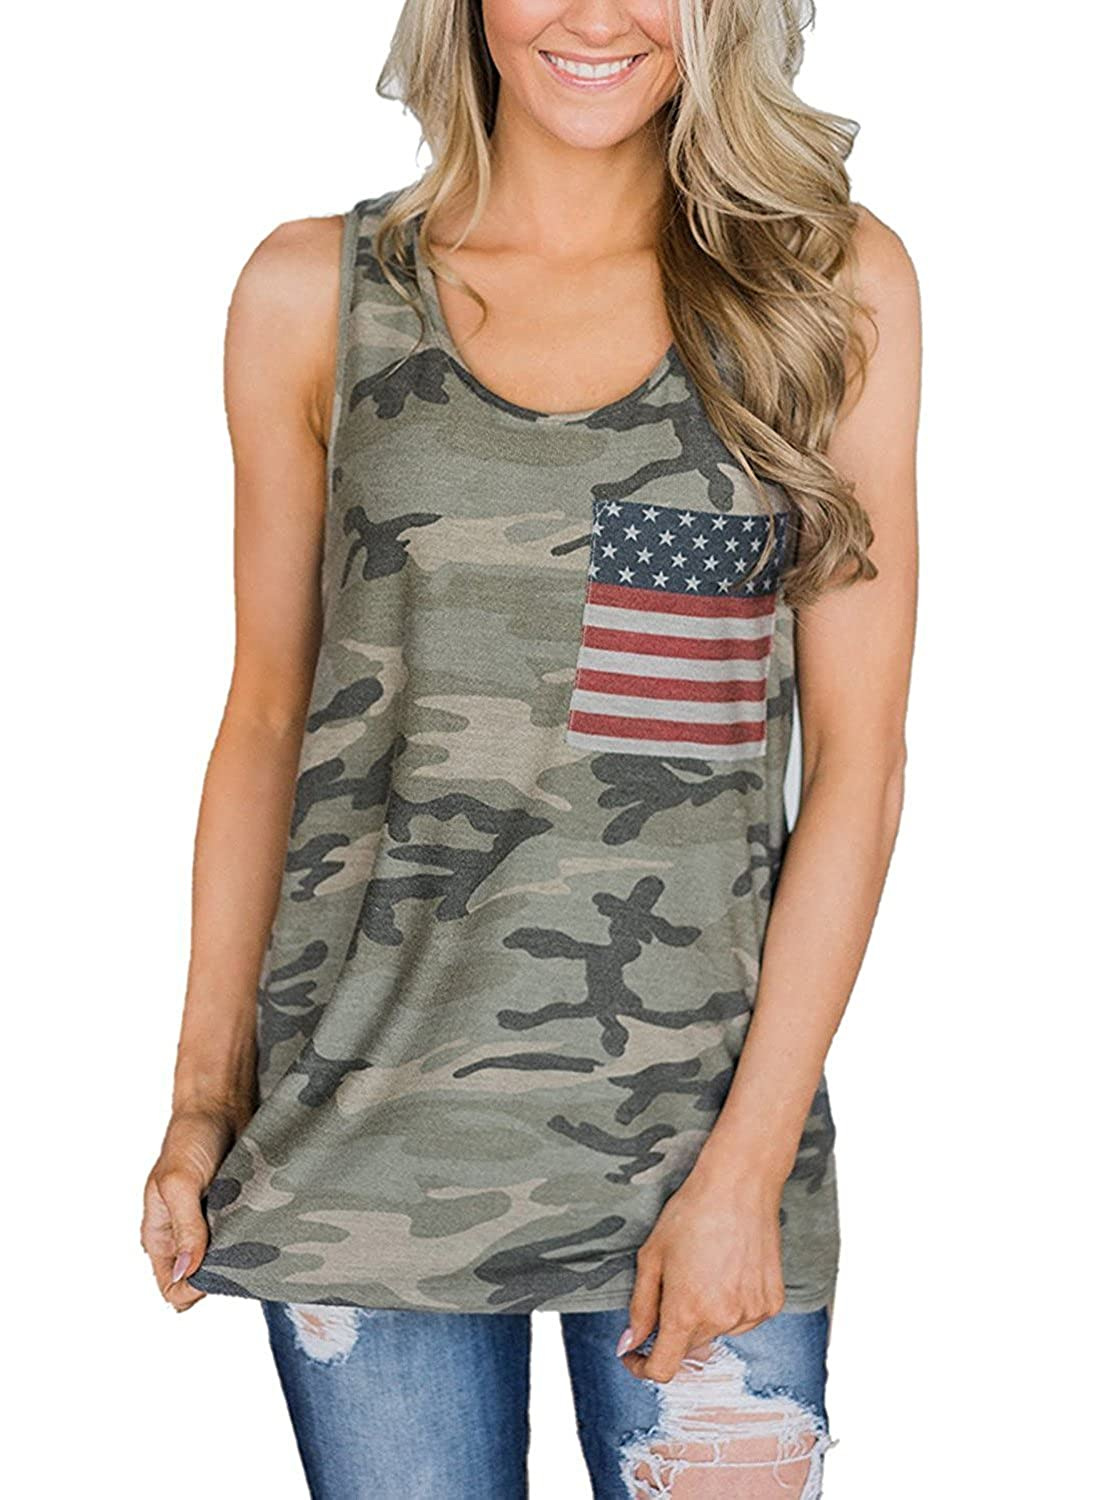 9c41c752a4b34 Amazon.com  Womens American Flag Tank Top Patriots USA Sleeveless Shirts  4th of July Clothes  Clothing